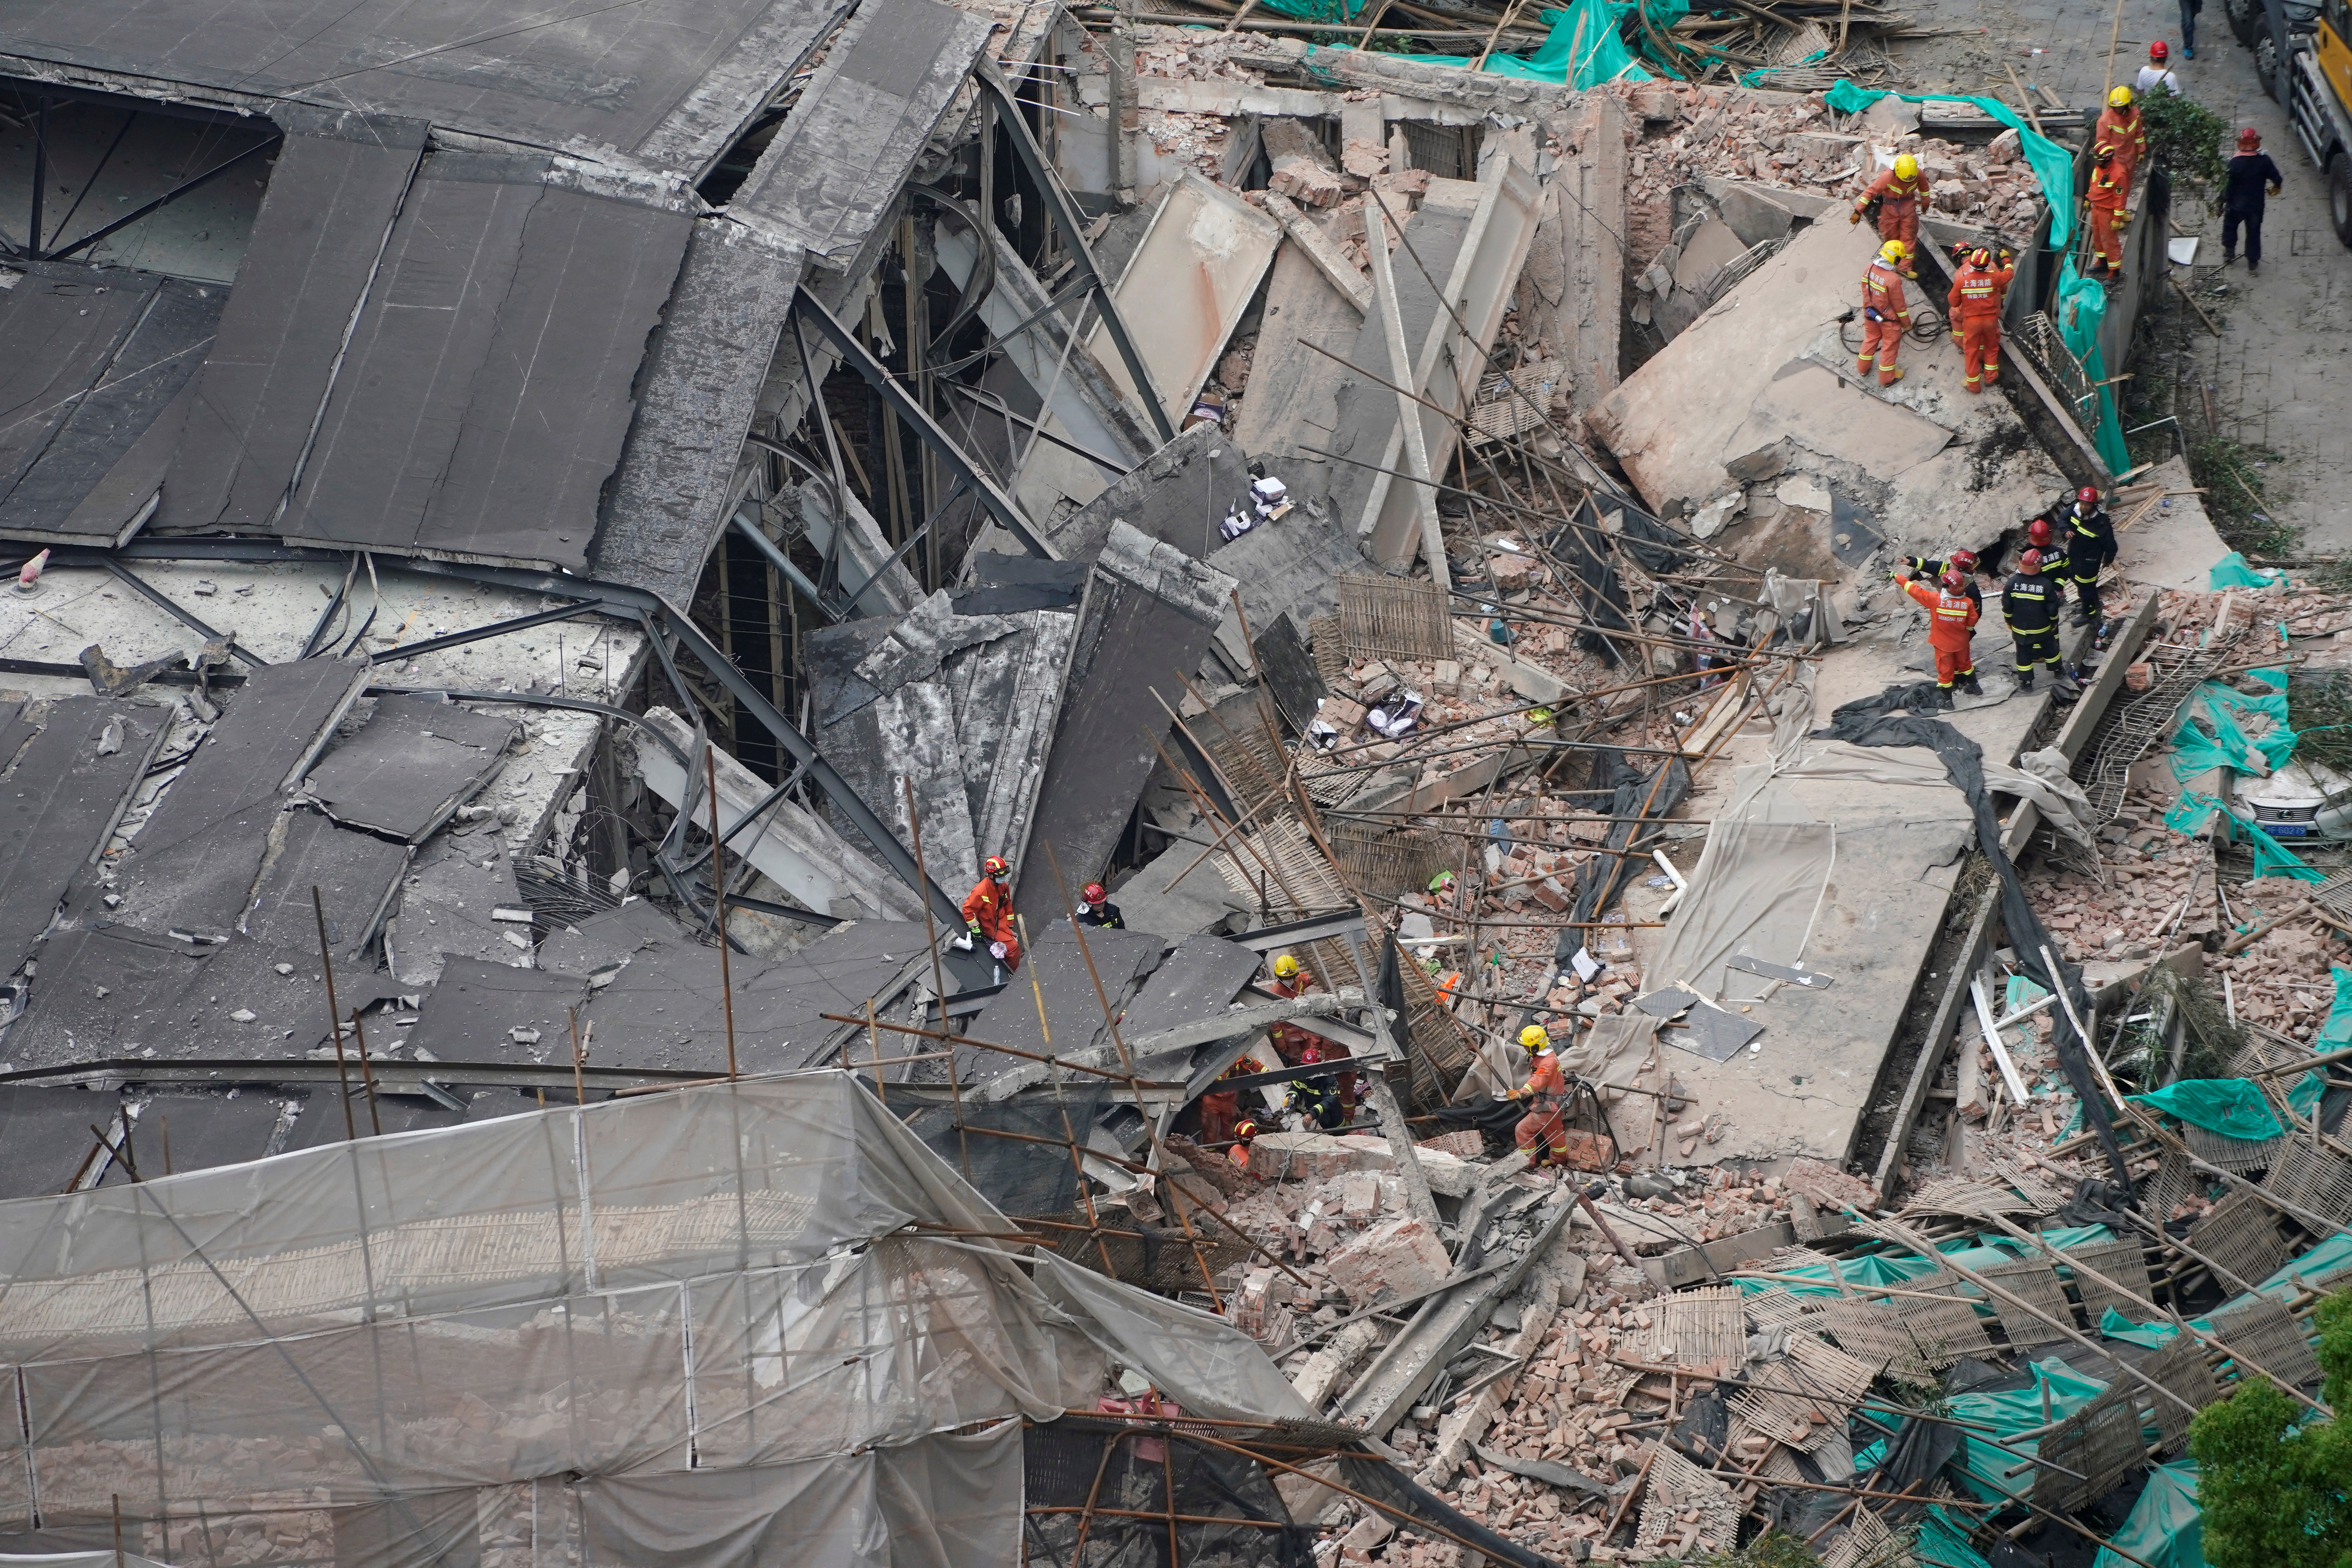 Firefighters work at the site where a building collapsed, in Shanghai, May 16, 2019.